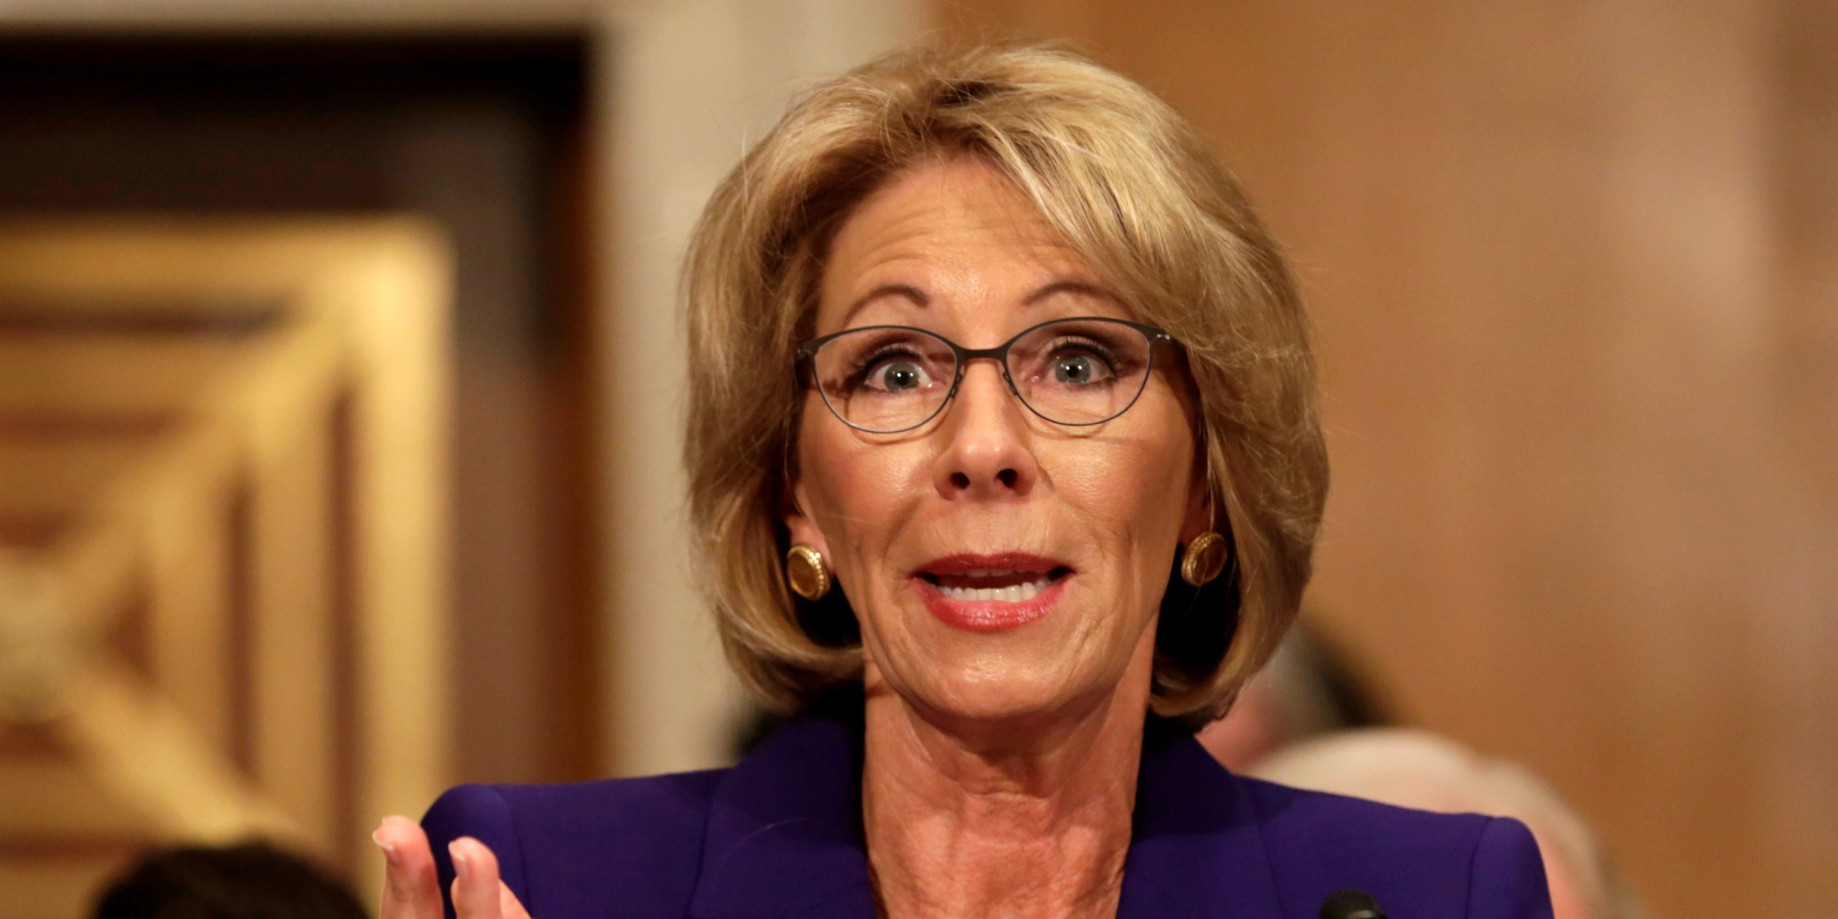 Why I Wont Vote For Betsy Devos >> How Bad Will The Country Sink Betsy Devos Science And The Future